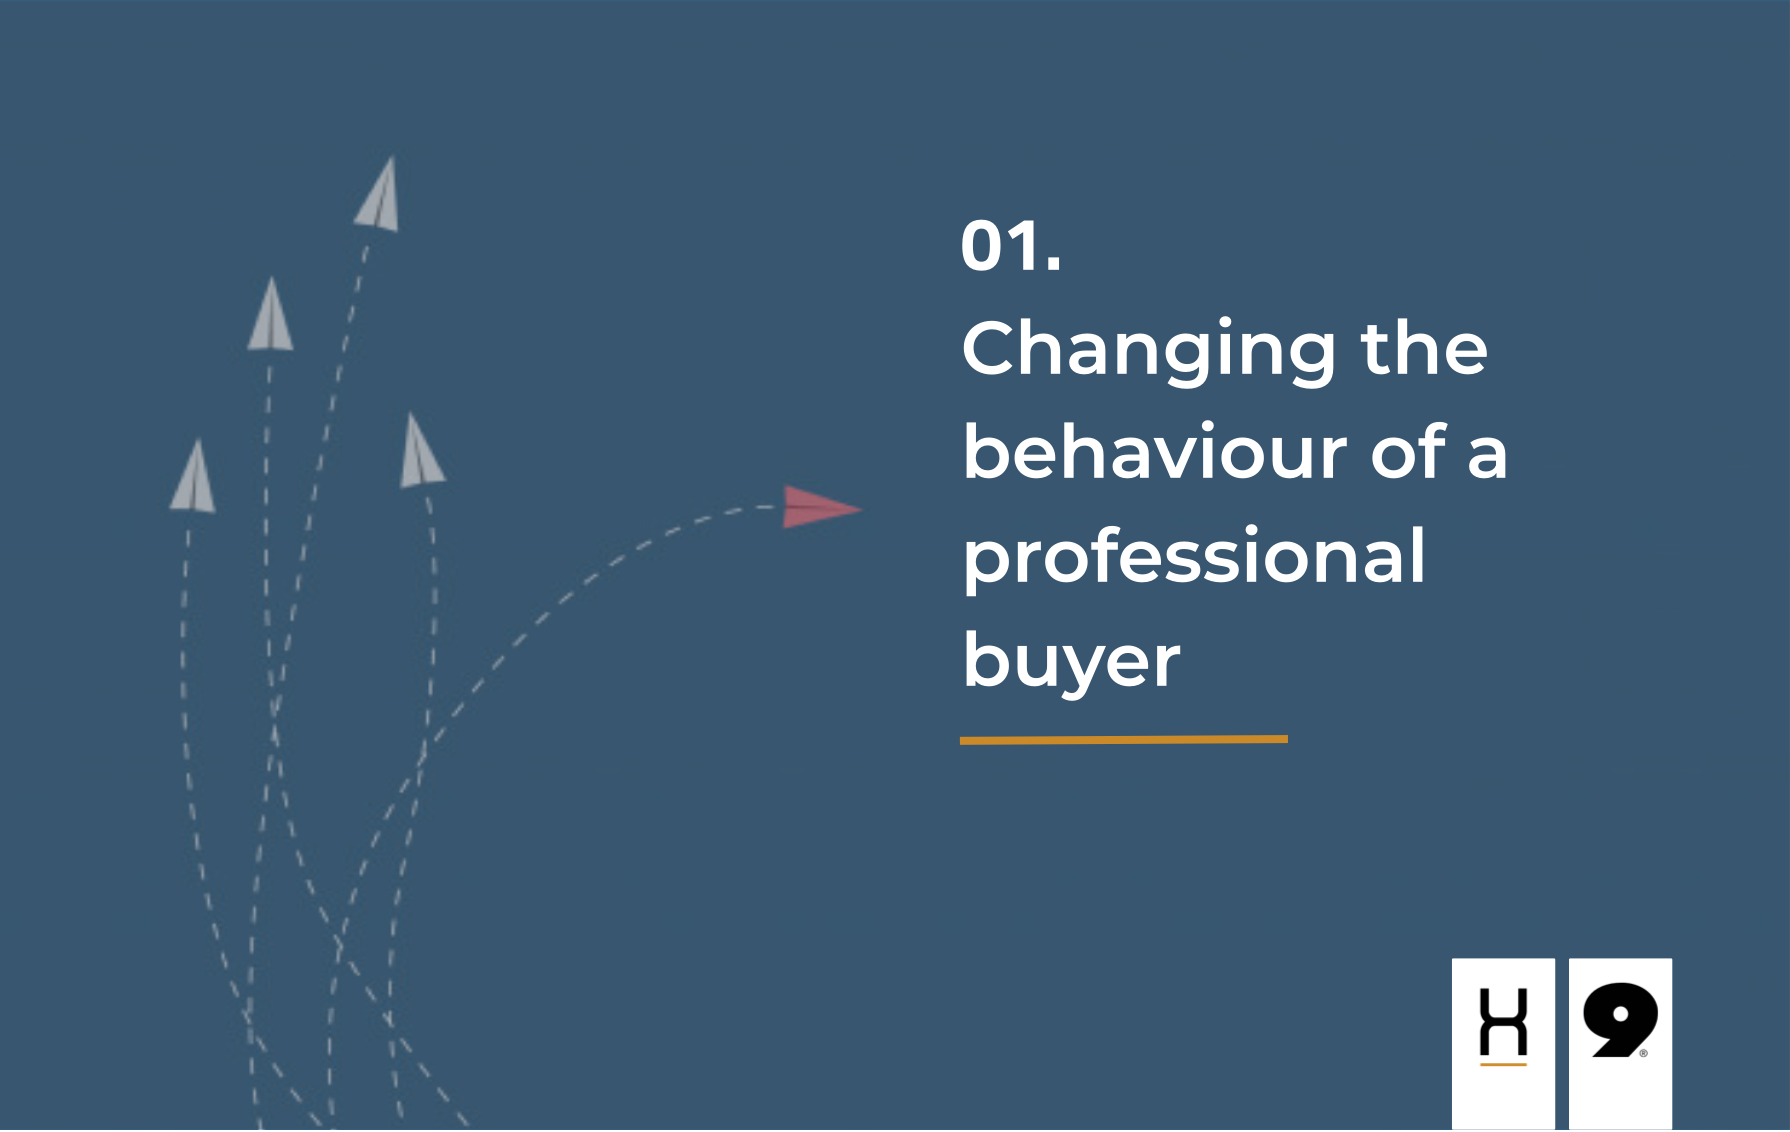 Changing the behaviour of a professional buyer